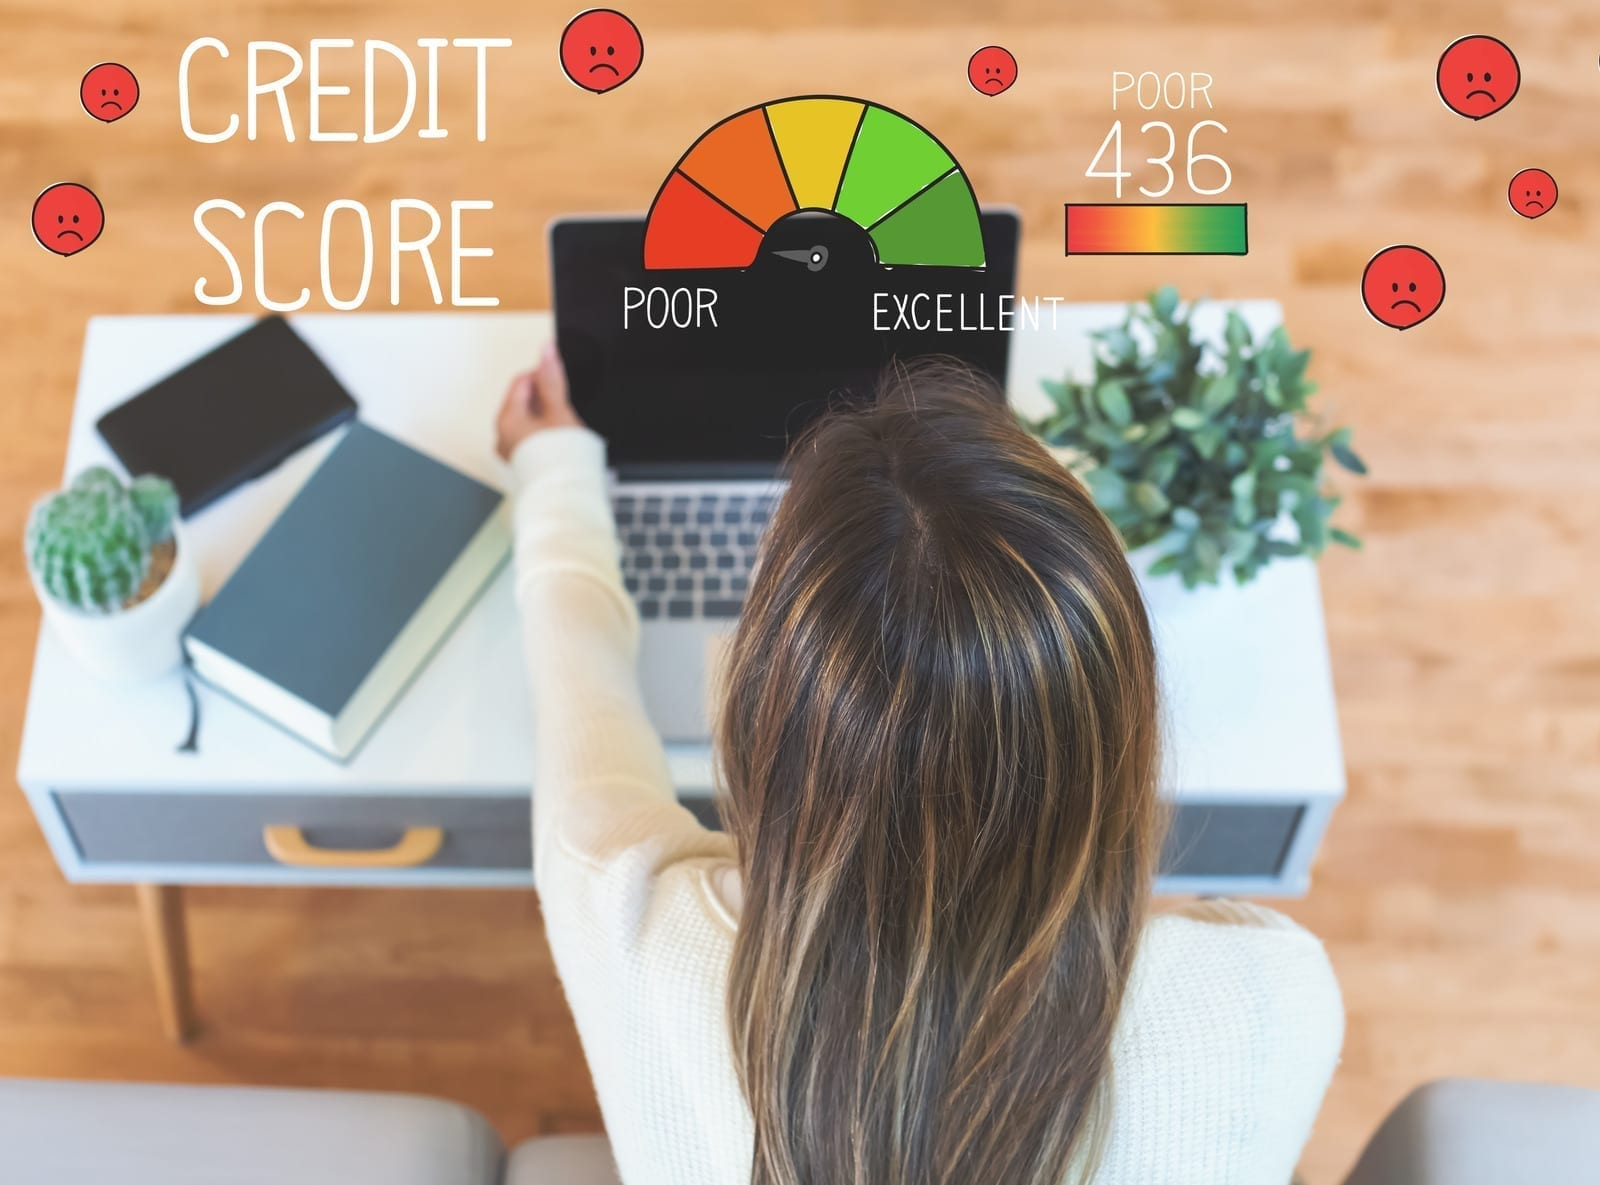 Poor Credit Score with woman using her laptop computer